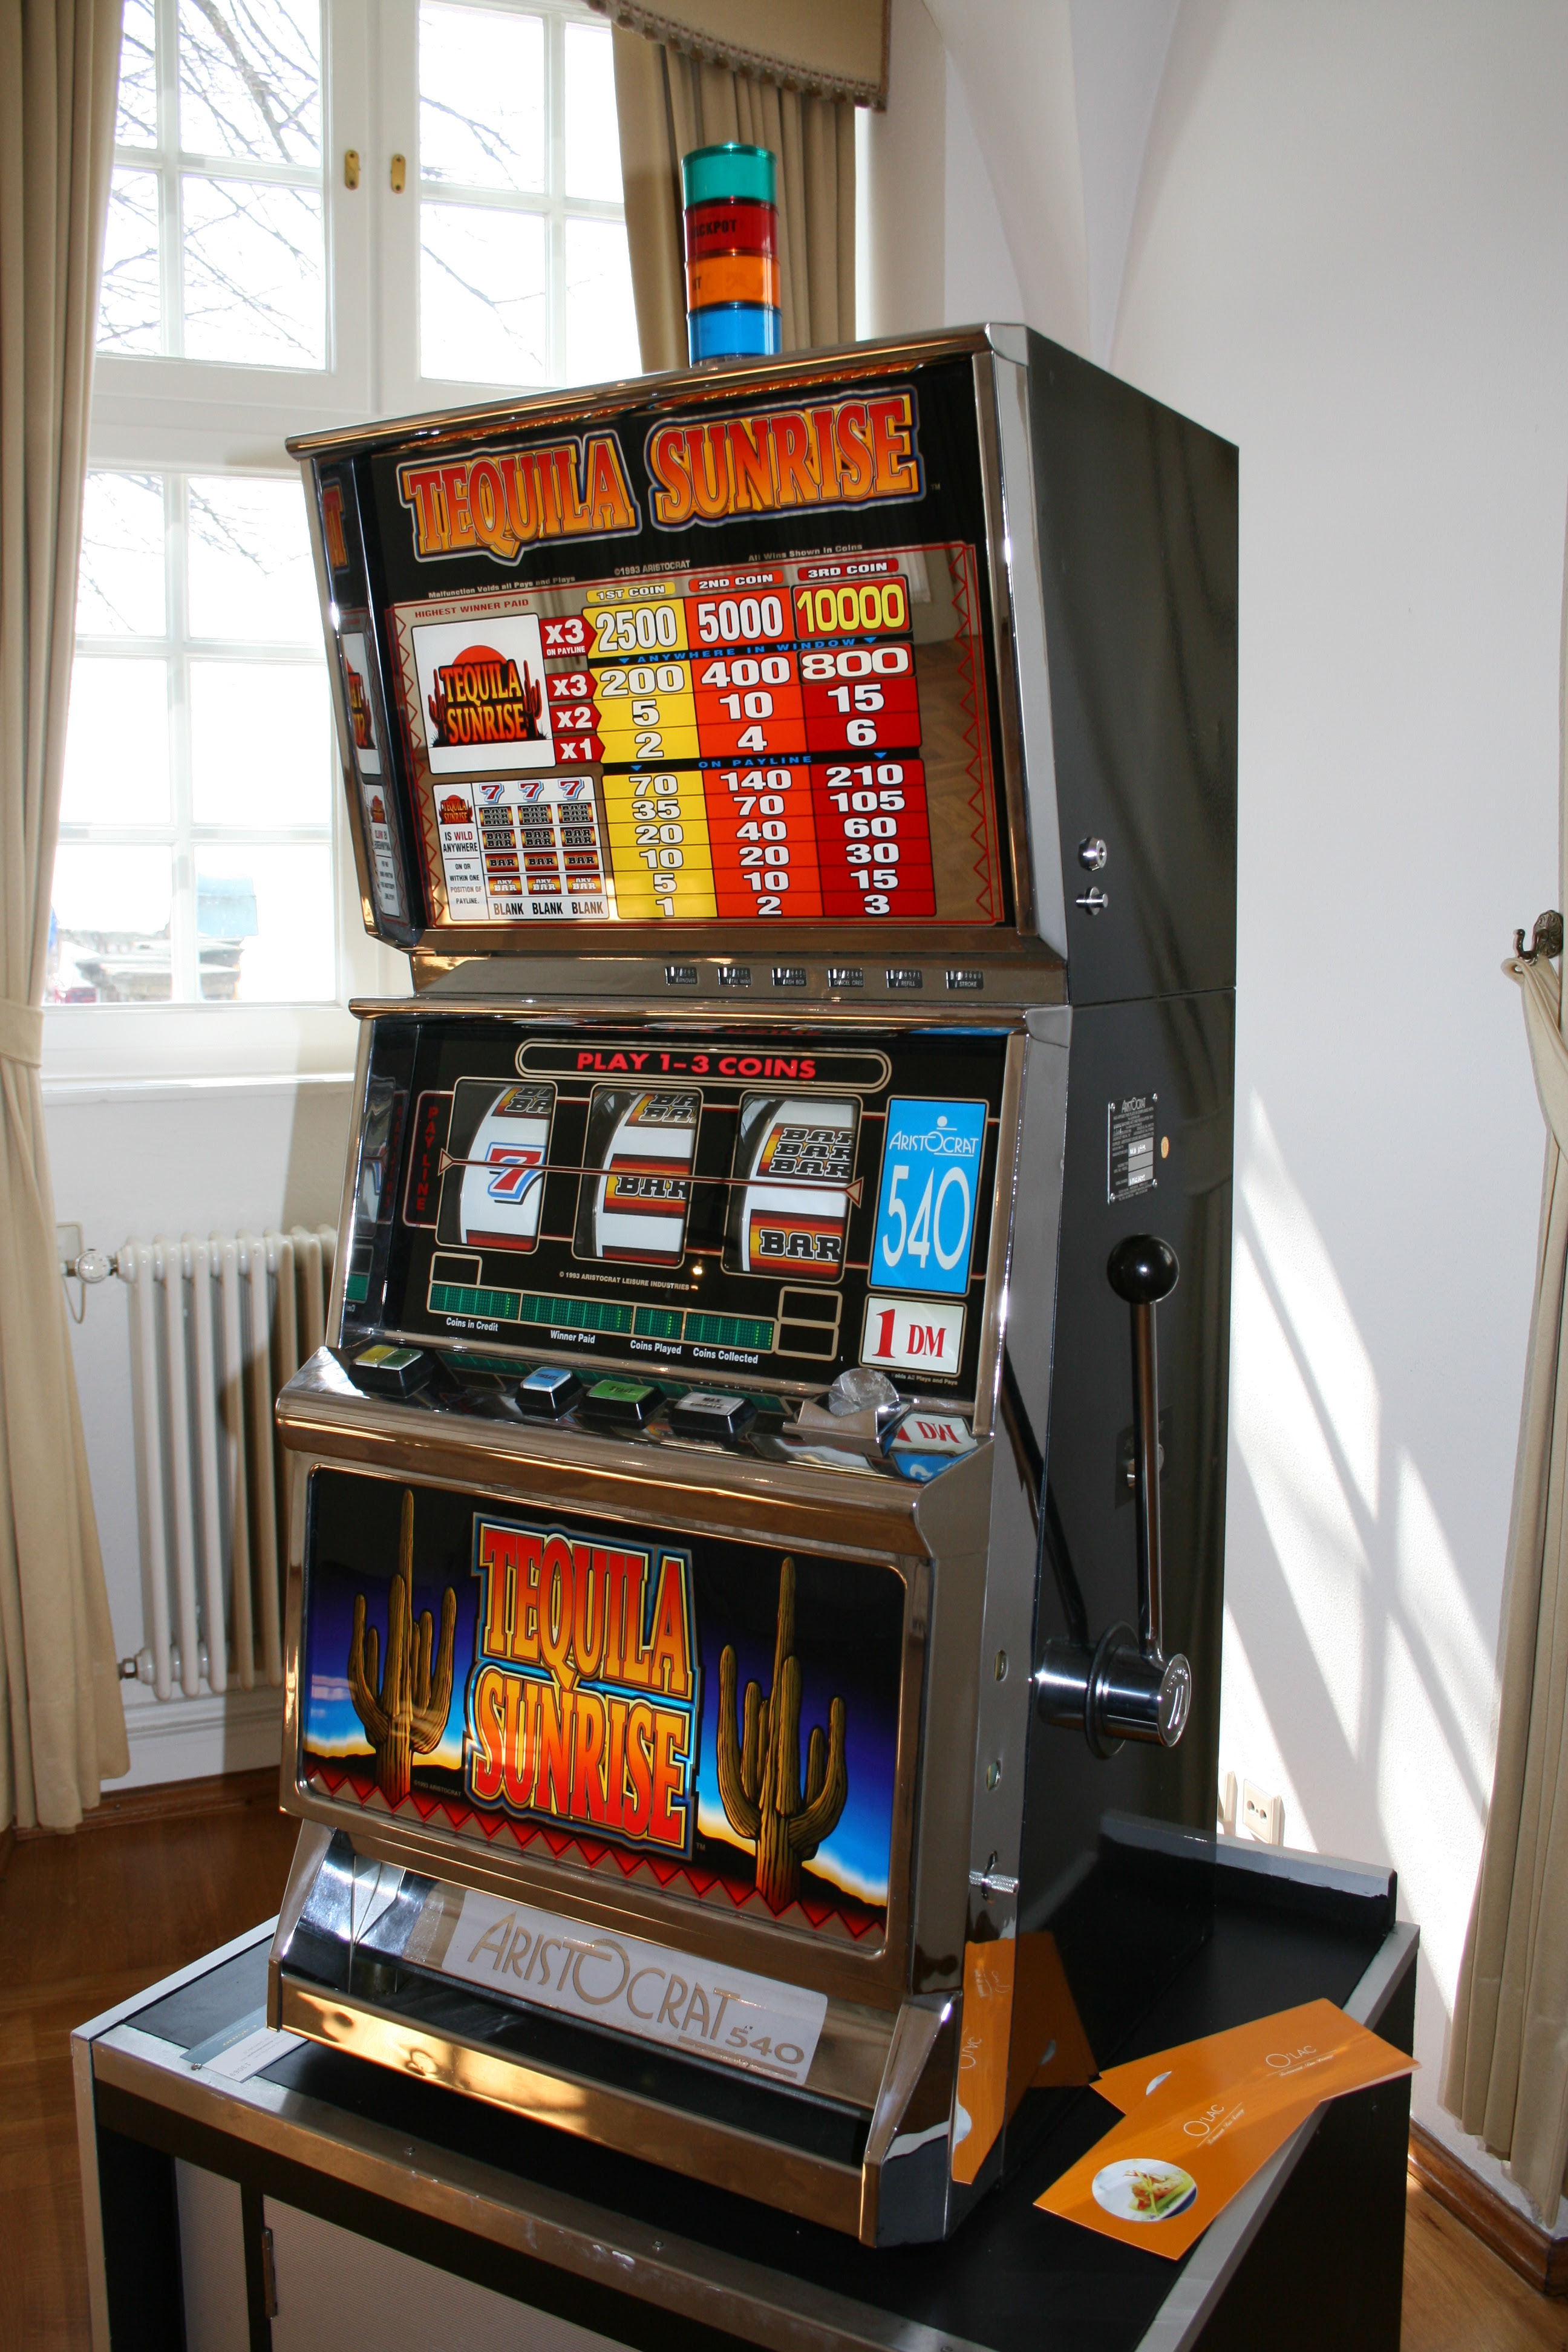 07/05/ · The slot machines featured on reputable online casino sites are not rigged.Slots' random number generators (RNG) ensure there is no